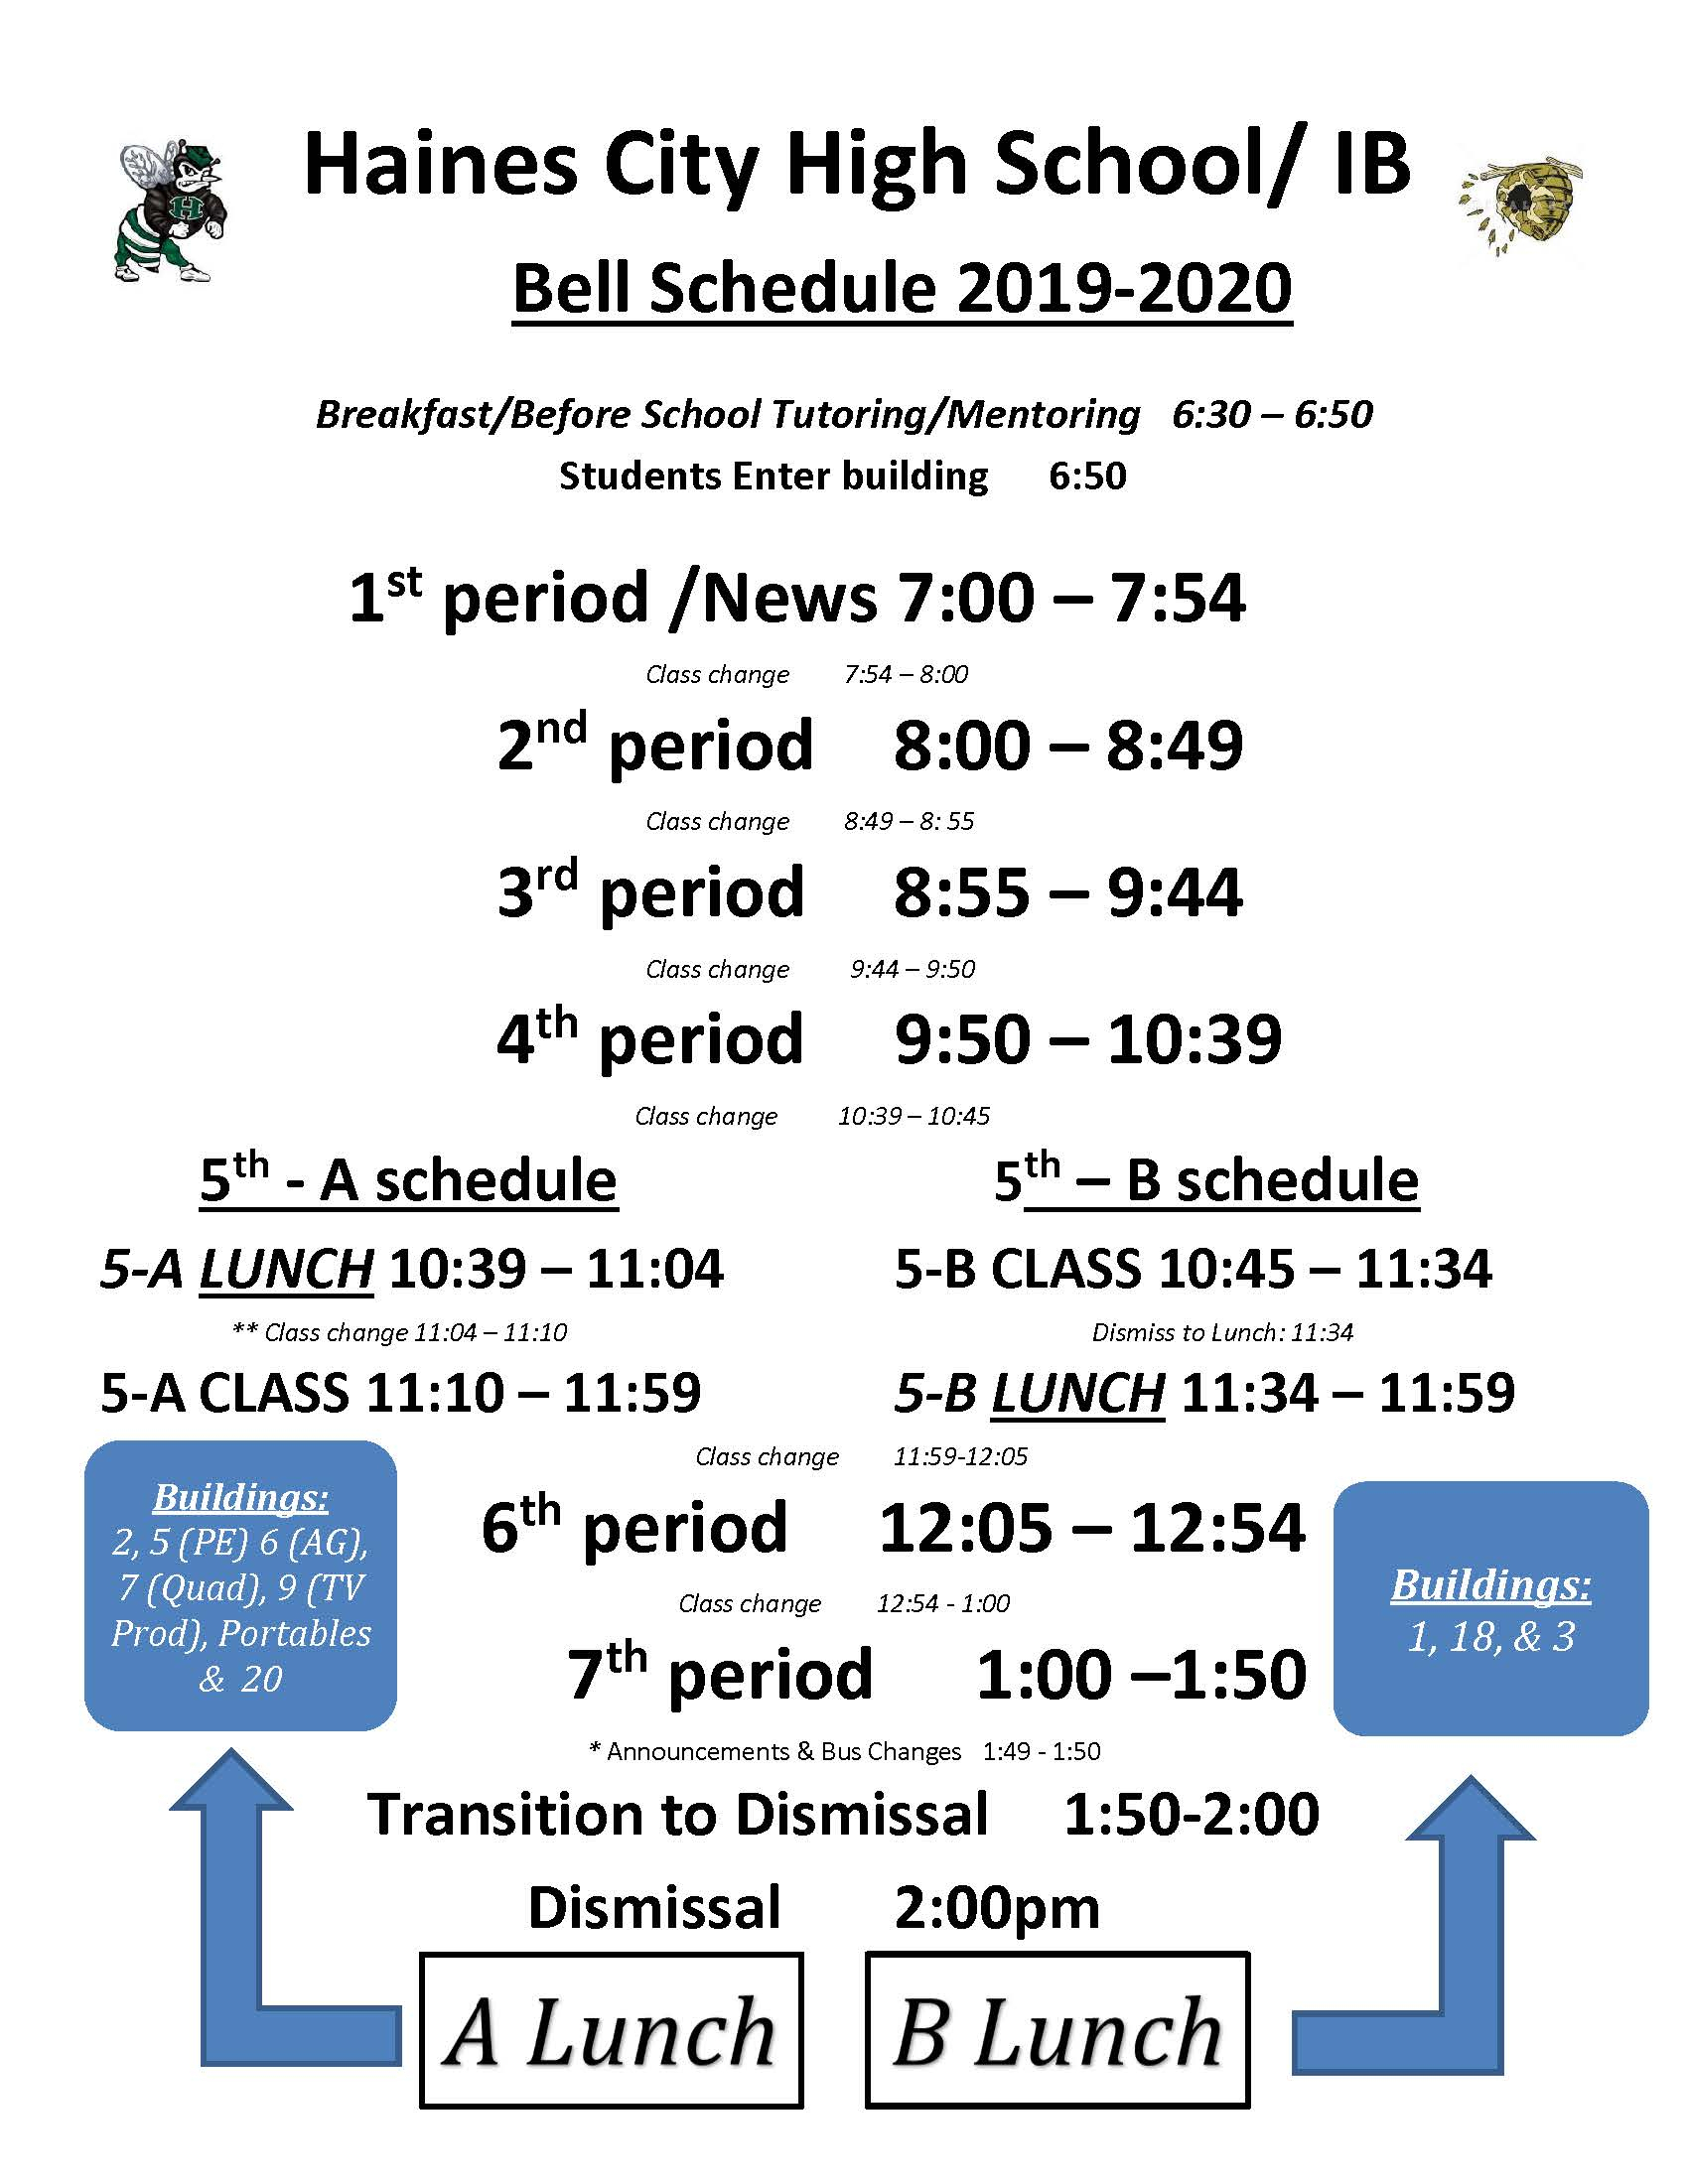 Bell Schedule – Haines City High School pertaining to Haines City Bell Schedule